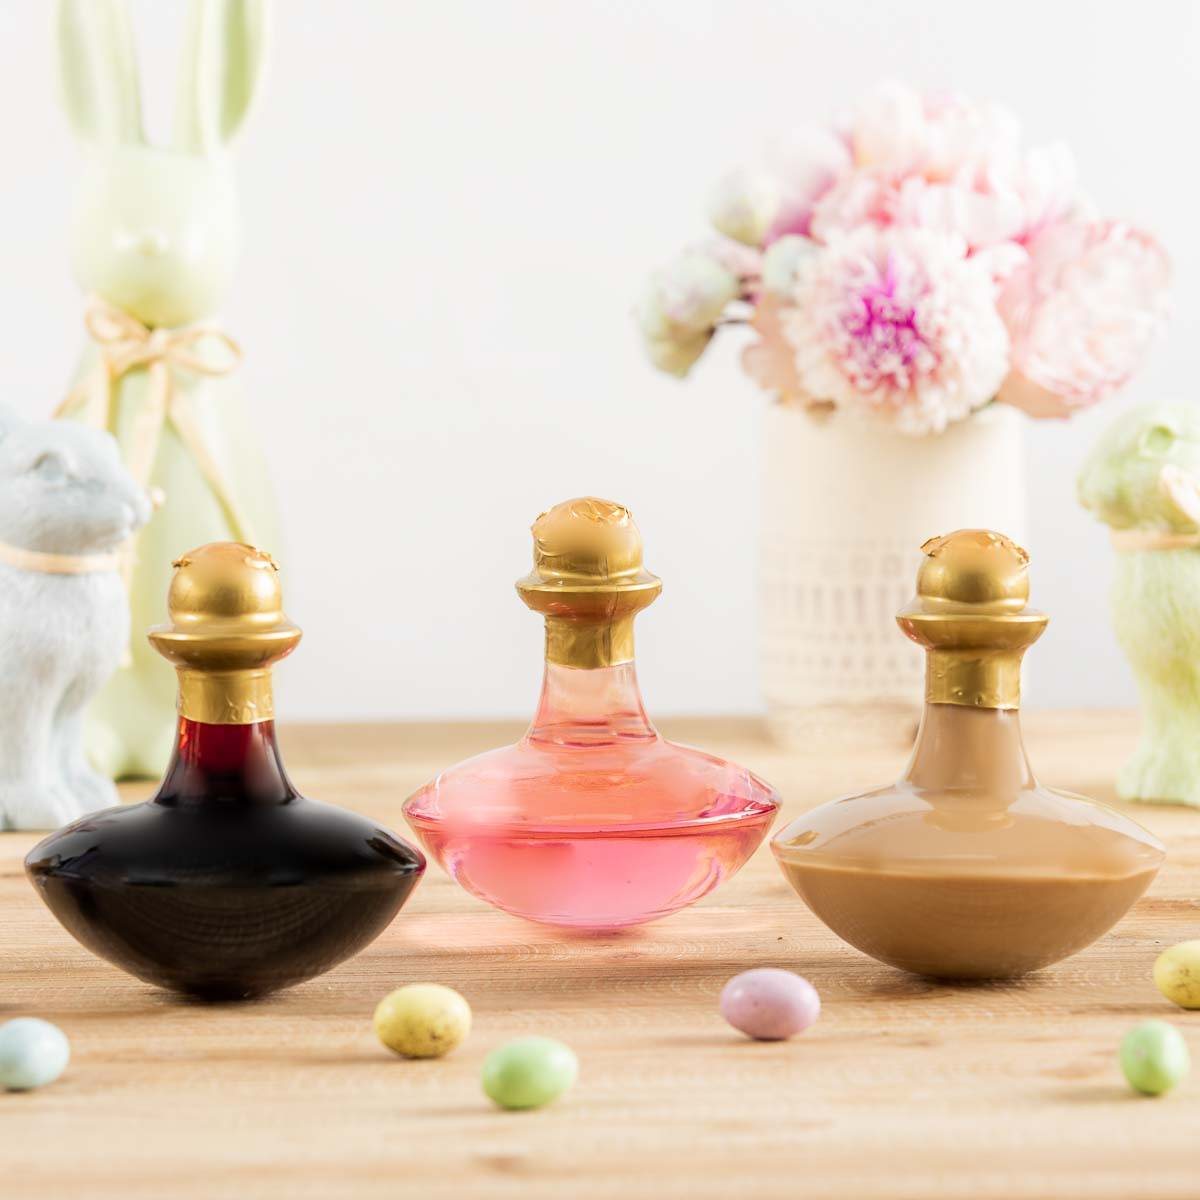 Limited Edition Tipsy Easter Set - Flaschengeist